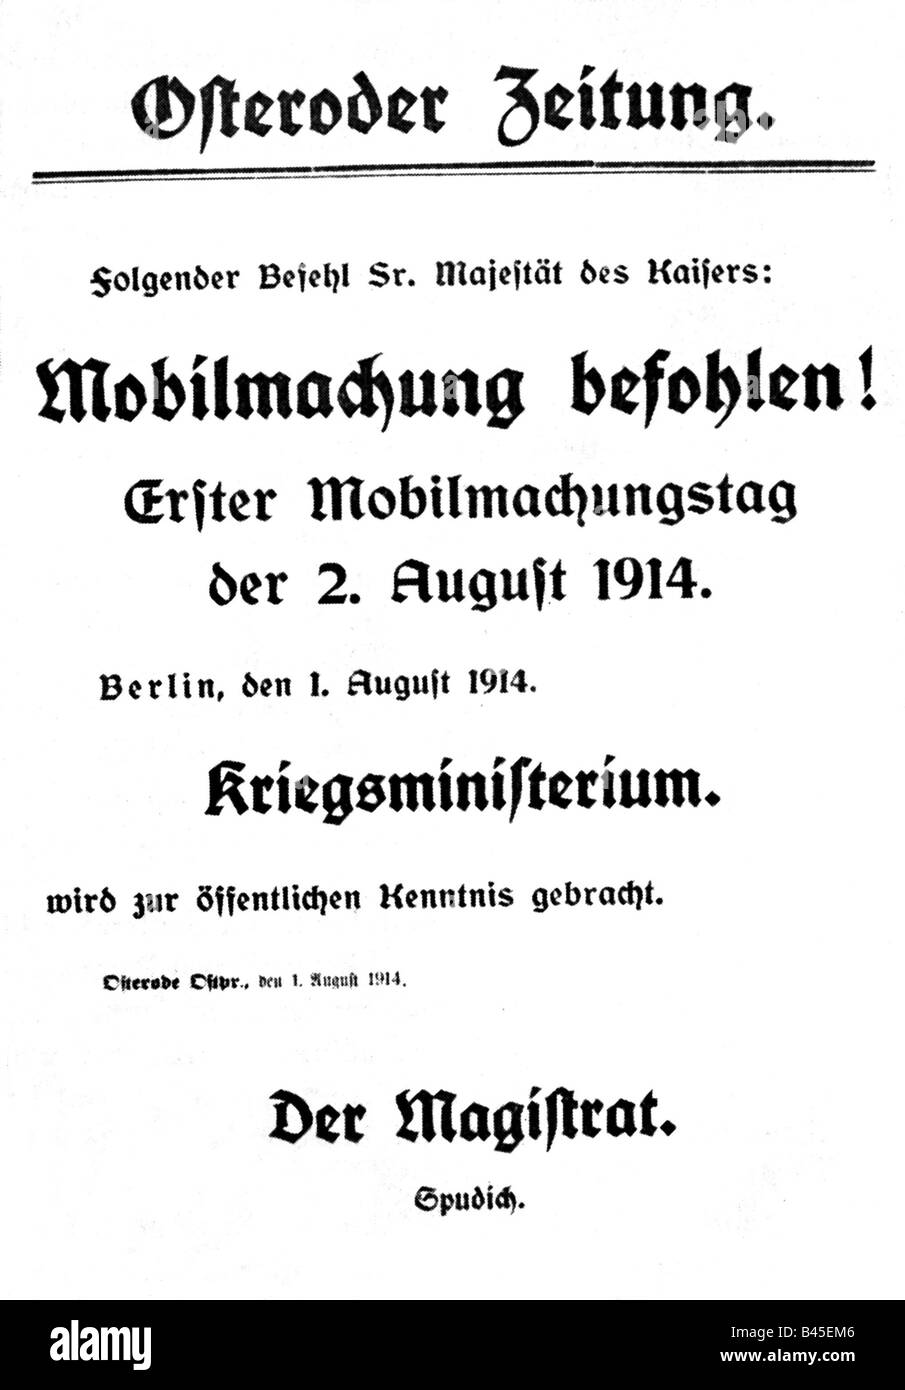 "events, First World War / WWI, outbreak of the war, ""Mobilmachung befohlen!"" (Mobilisation ordered!), special bulletin, Stock Photo"